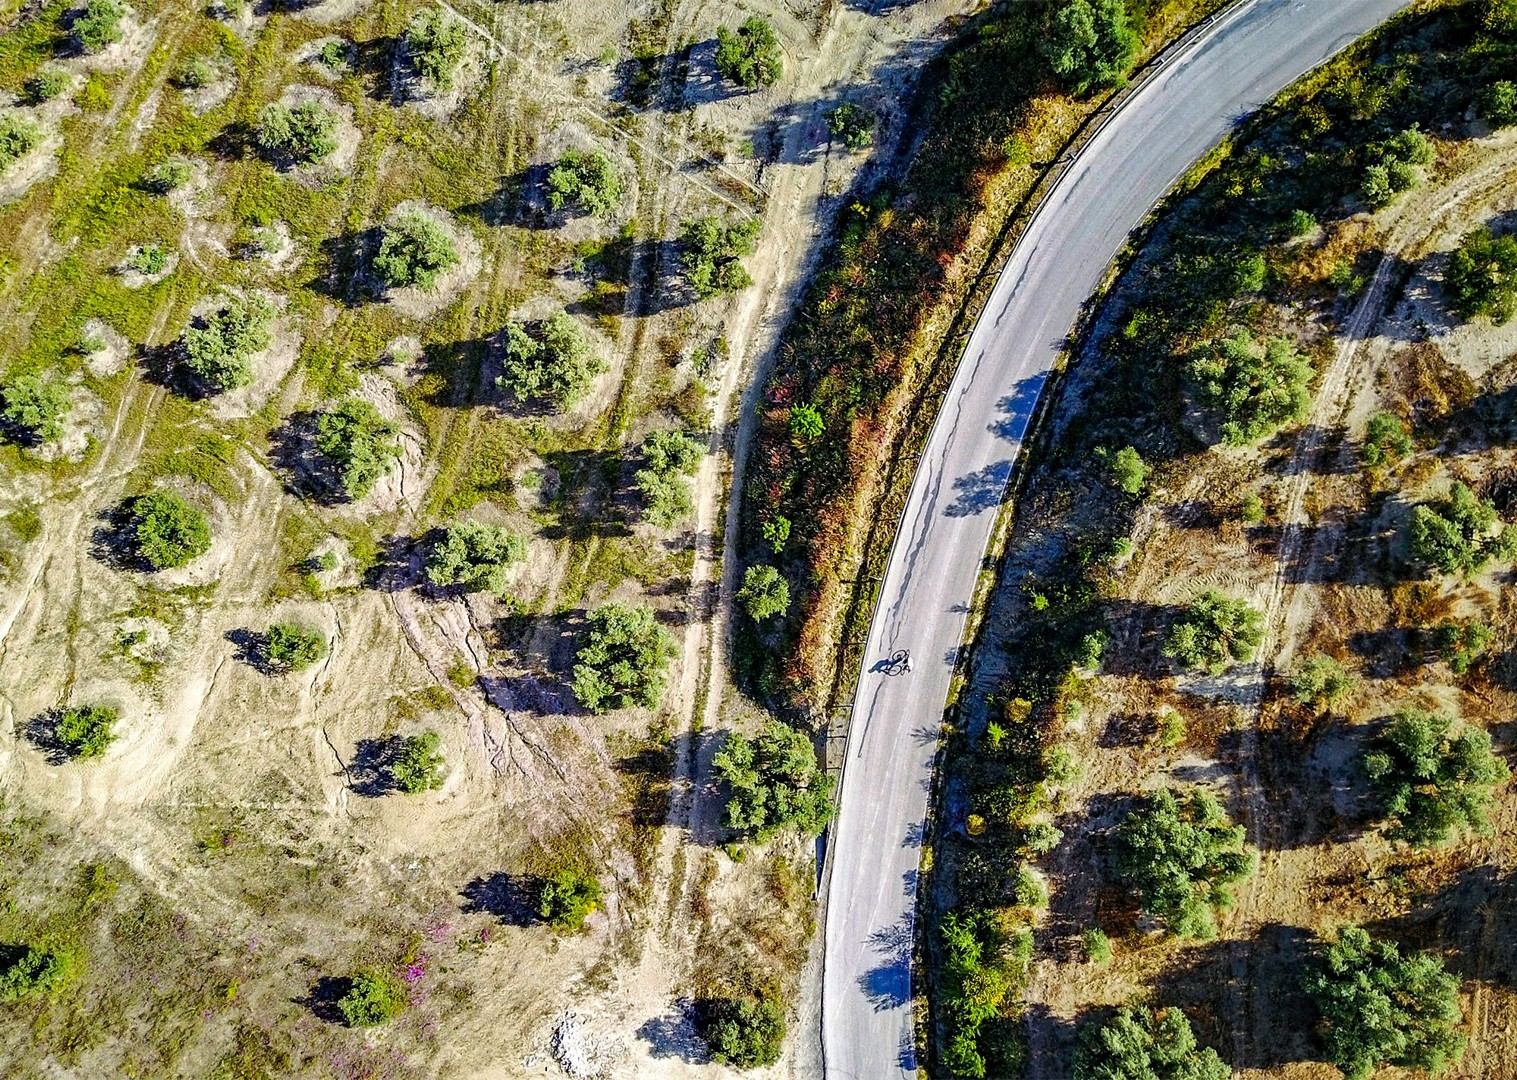 cycling-through-olive-groves-spain-road-cycling-holiday-north-to-south.jpg - Spain - Basque Country to Andalucia - North to South (16 Days) - Guided Road Cycling Holiday - Road Cycling